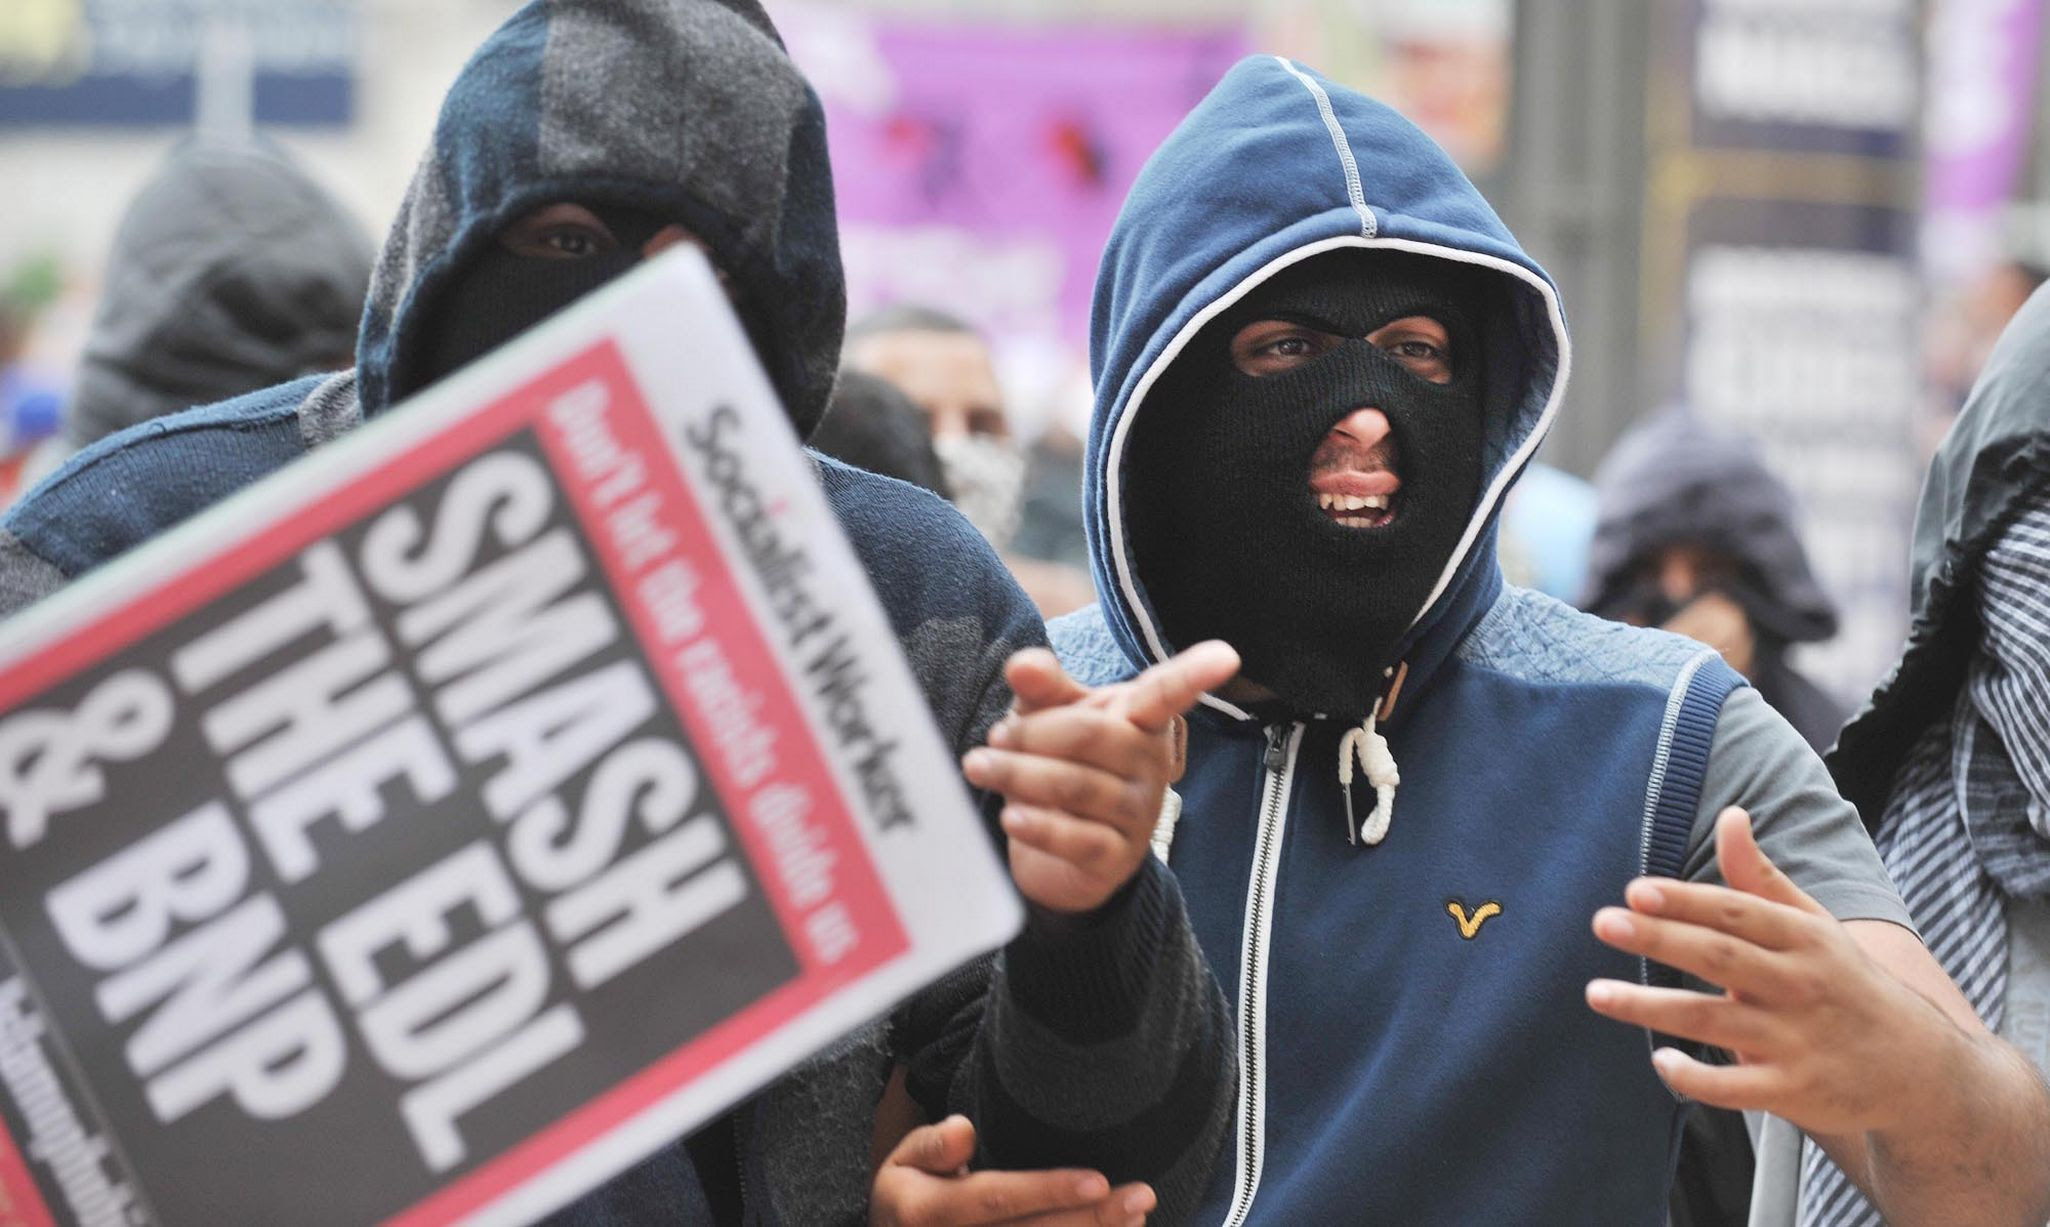 Unite Against Fascism supporters at the same Birmingham demonstration shown above